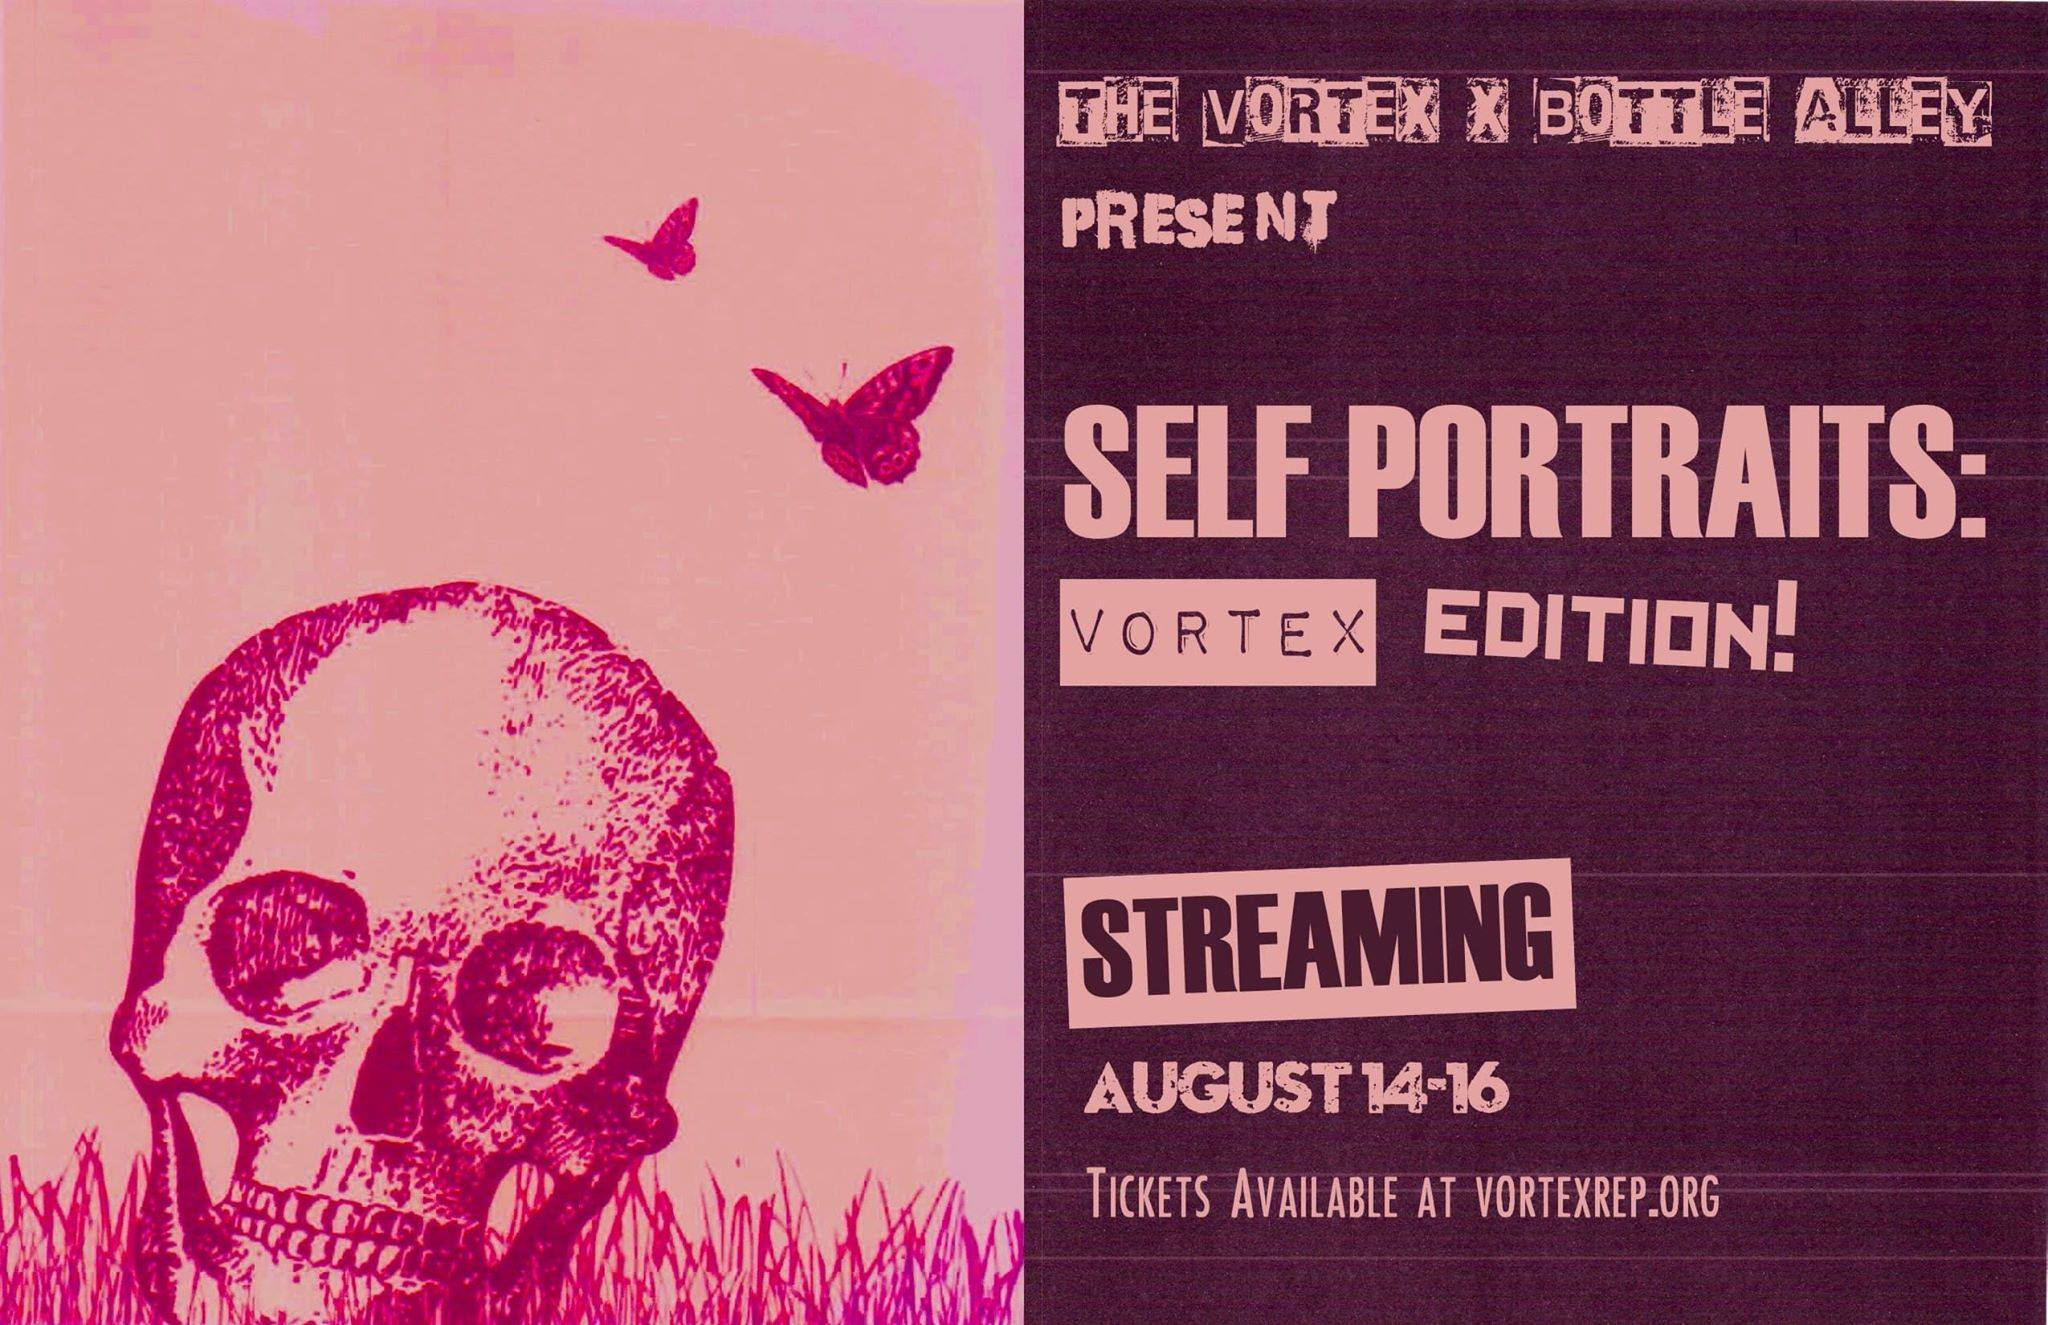 Self Portraits - Vortex Edition by Bottle Alley Theatre Company